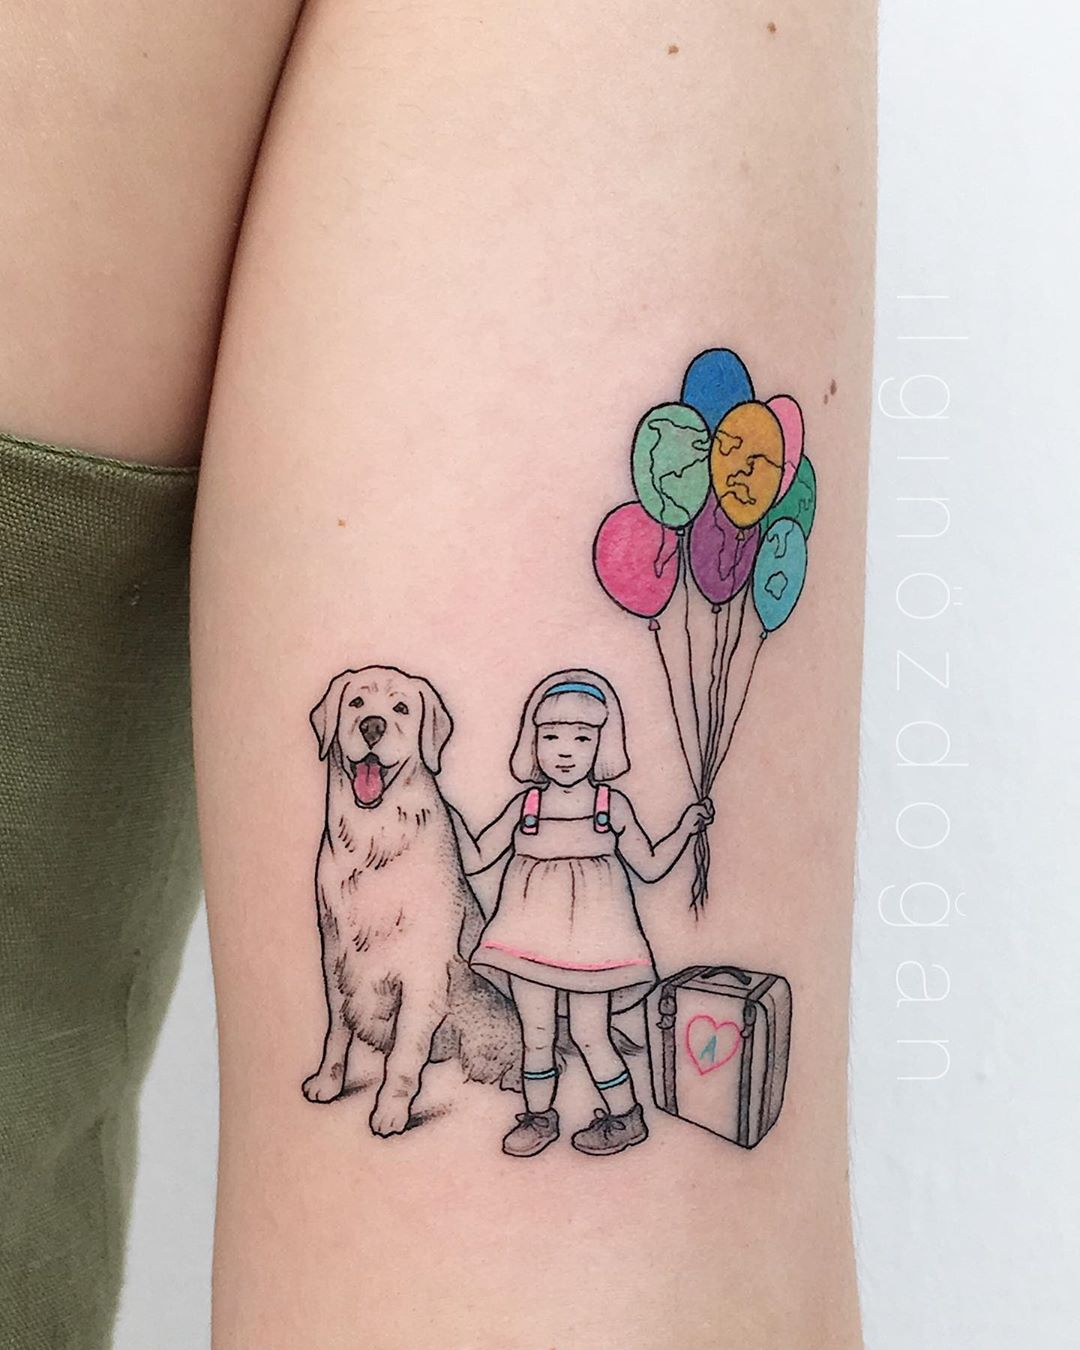 Linework family tattoo of a daughter and their dog by Ilgin Ozdogan